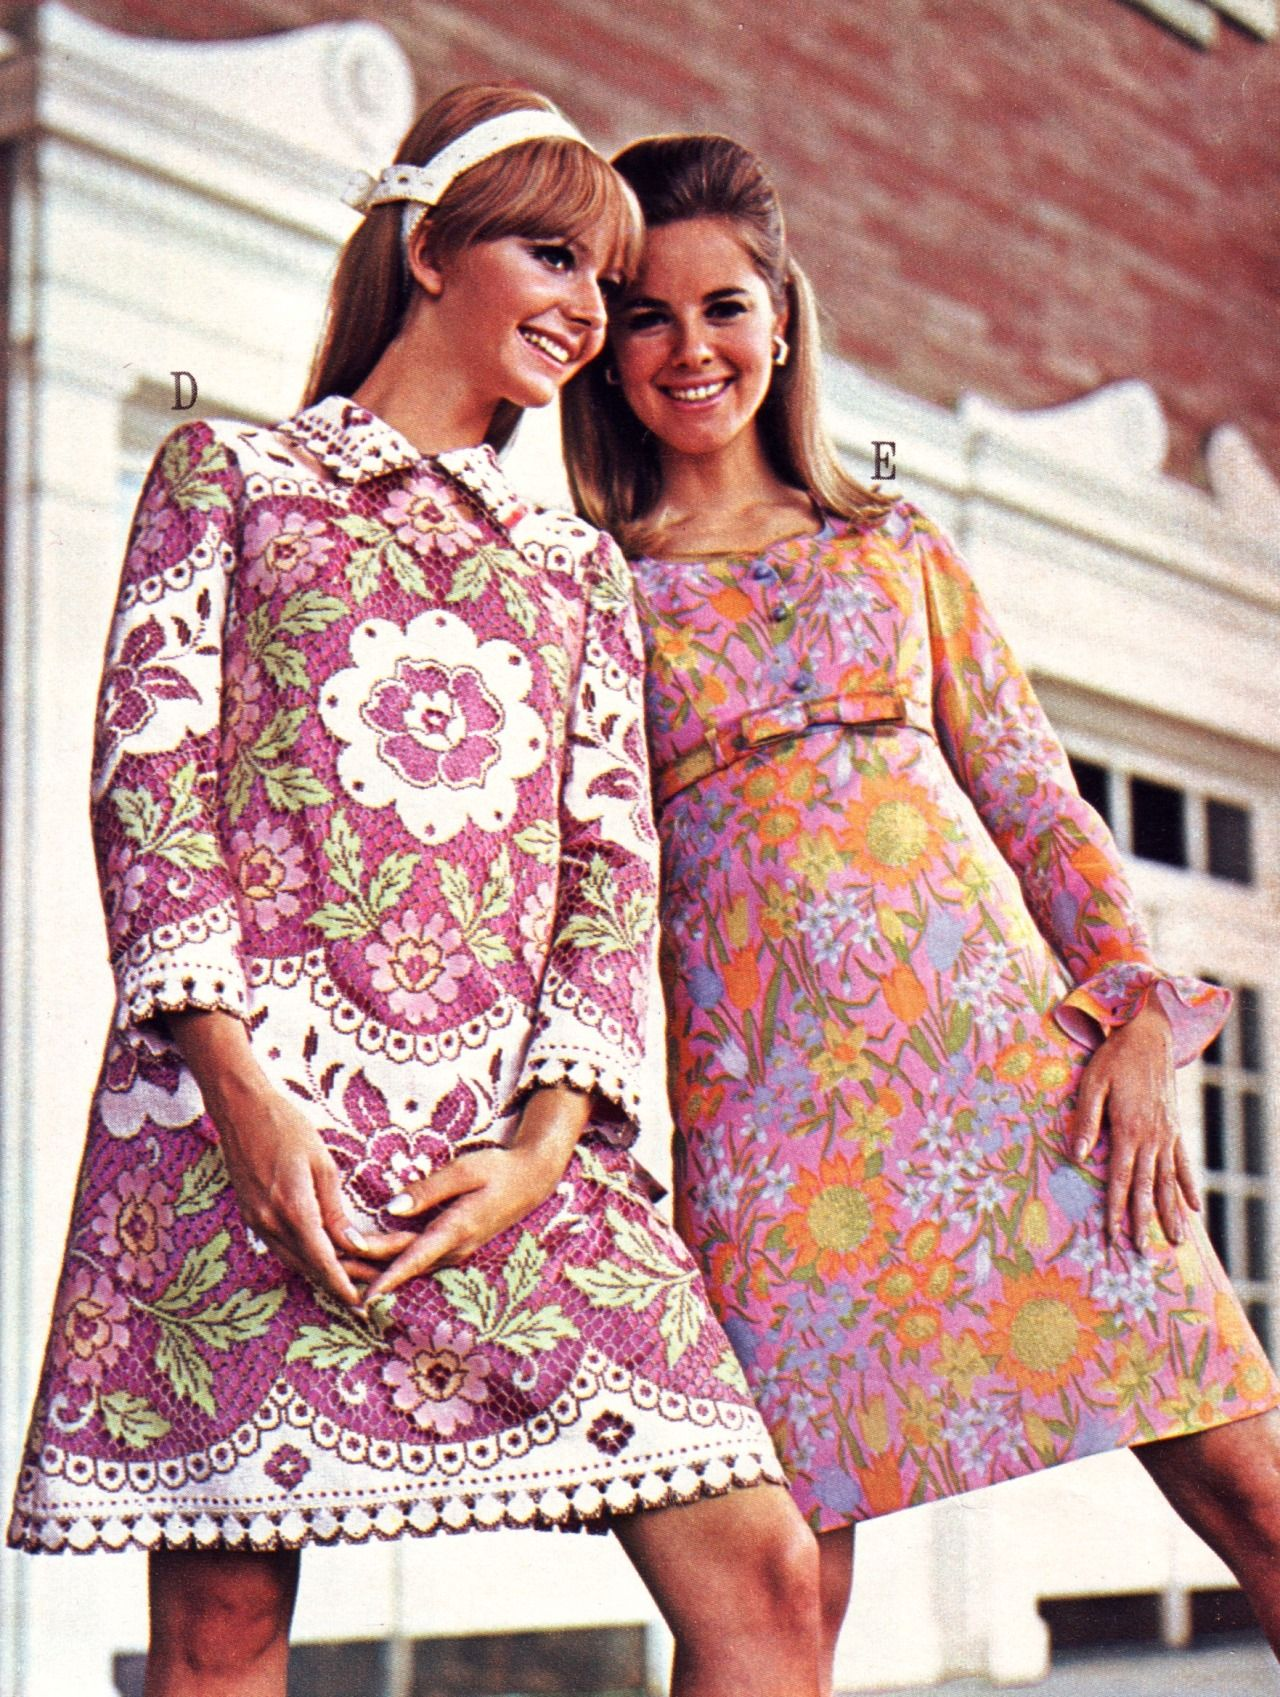 floral patterned dresses c late 1960s ♥  sixties